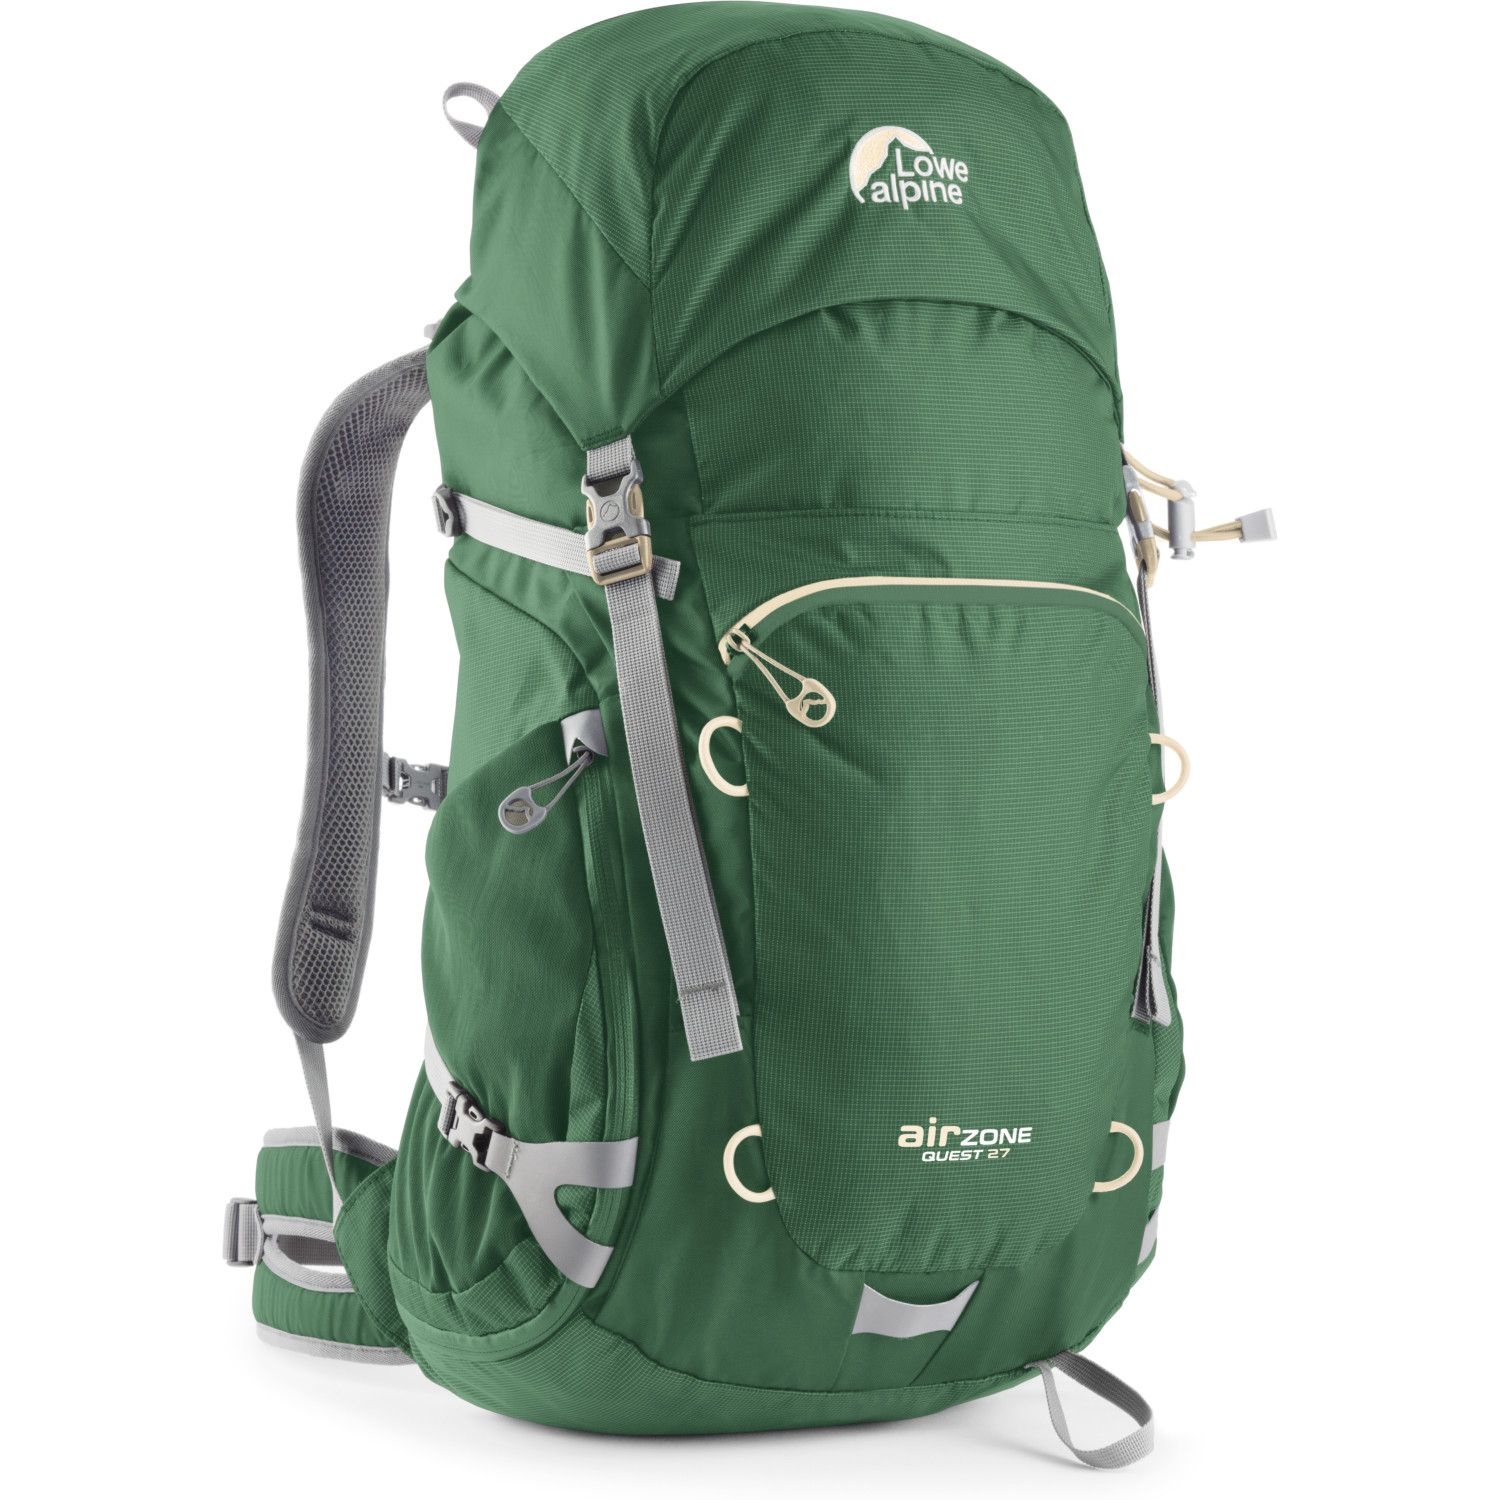 Lowe Alpine AirZone Quest 27 Backpack available at Webtogs.com ...